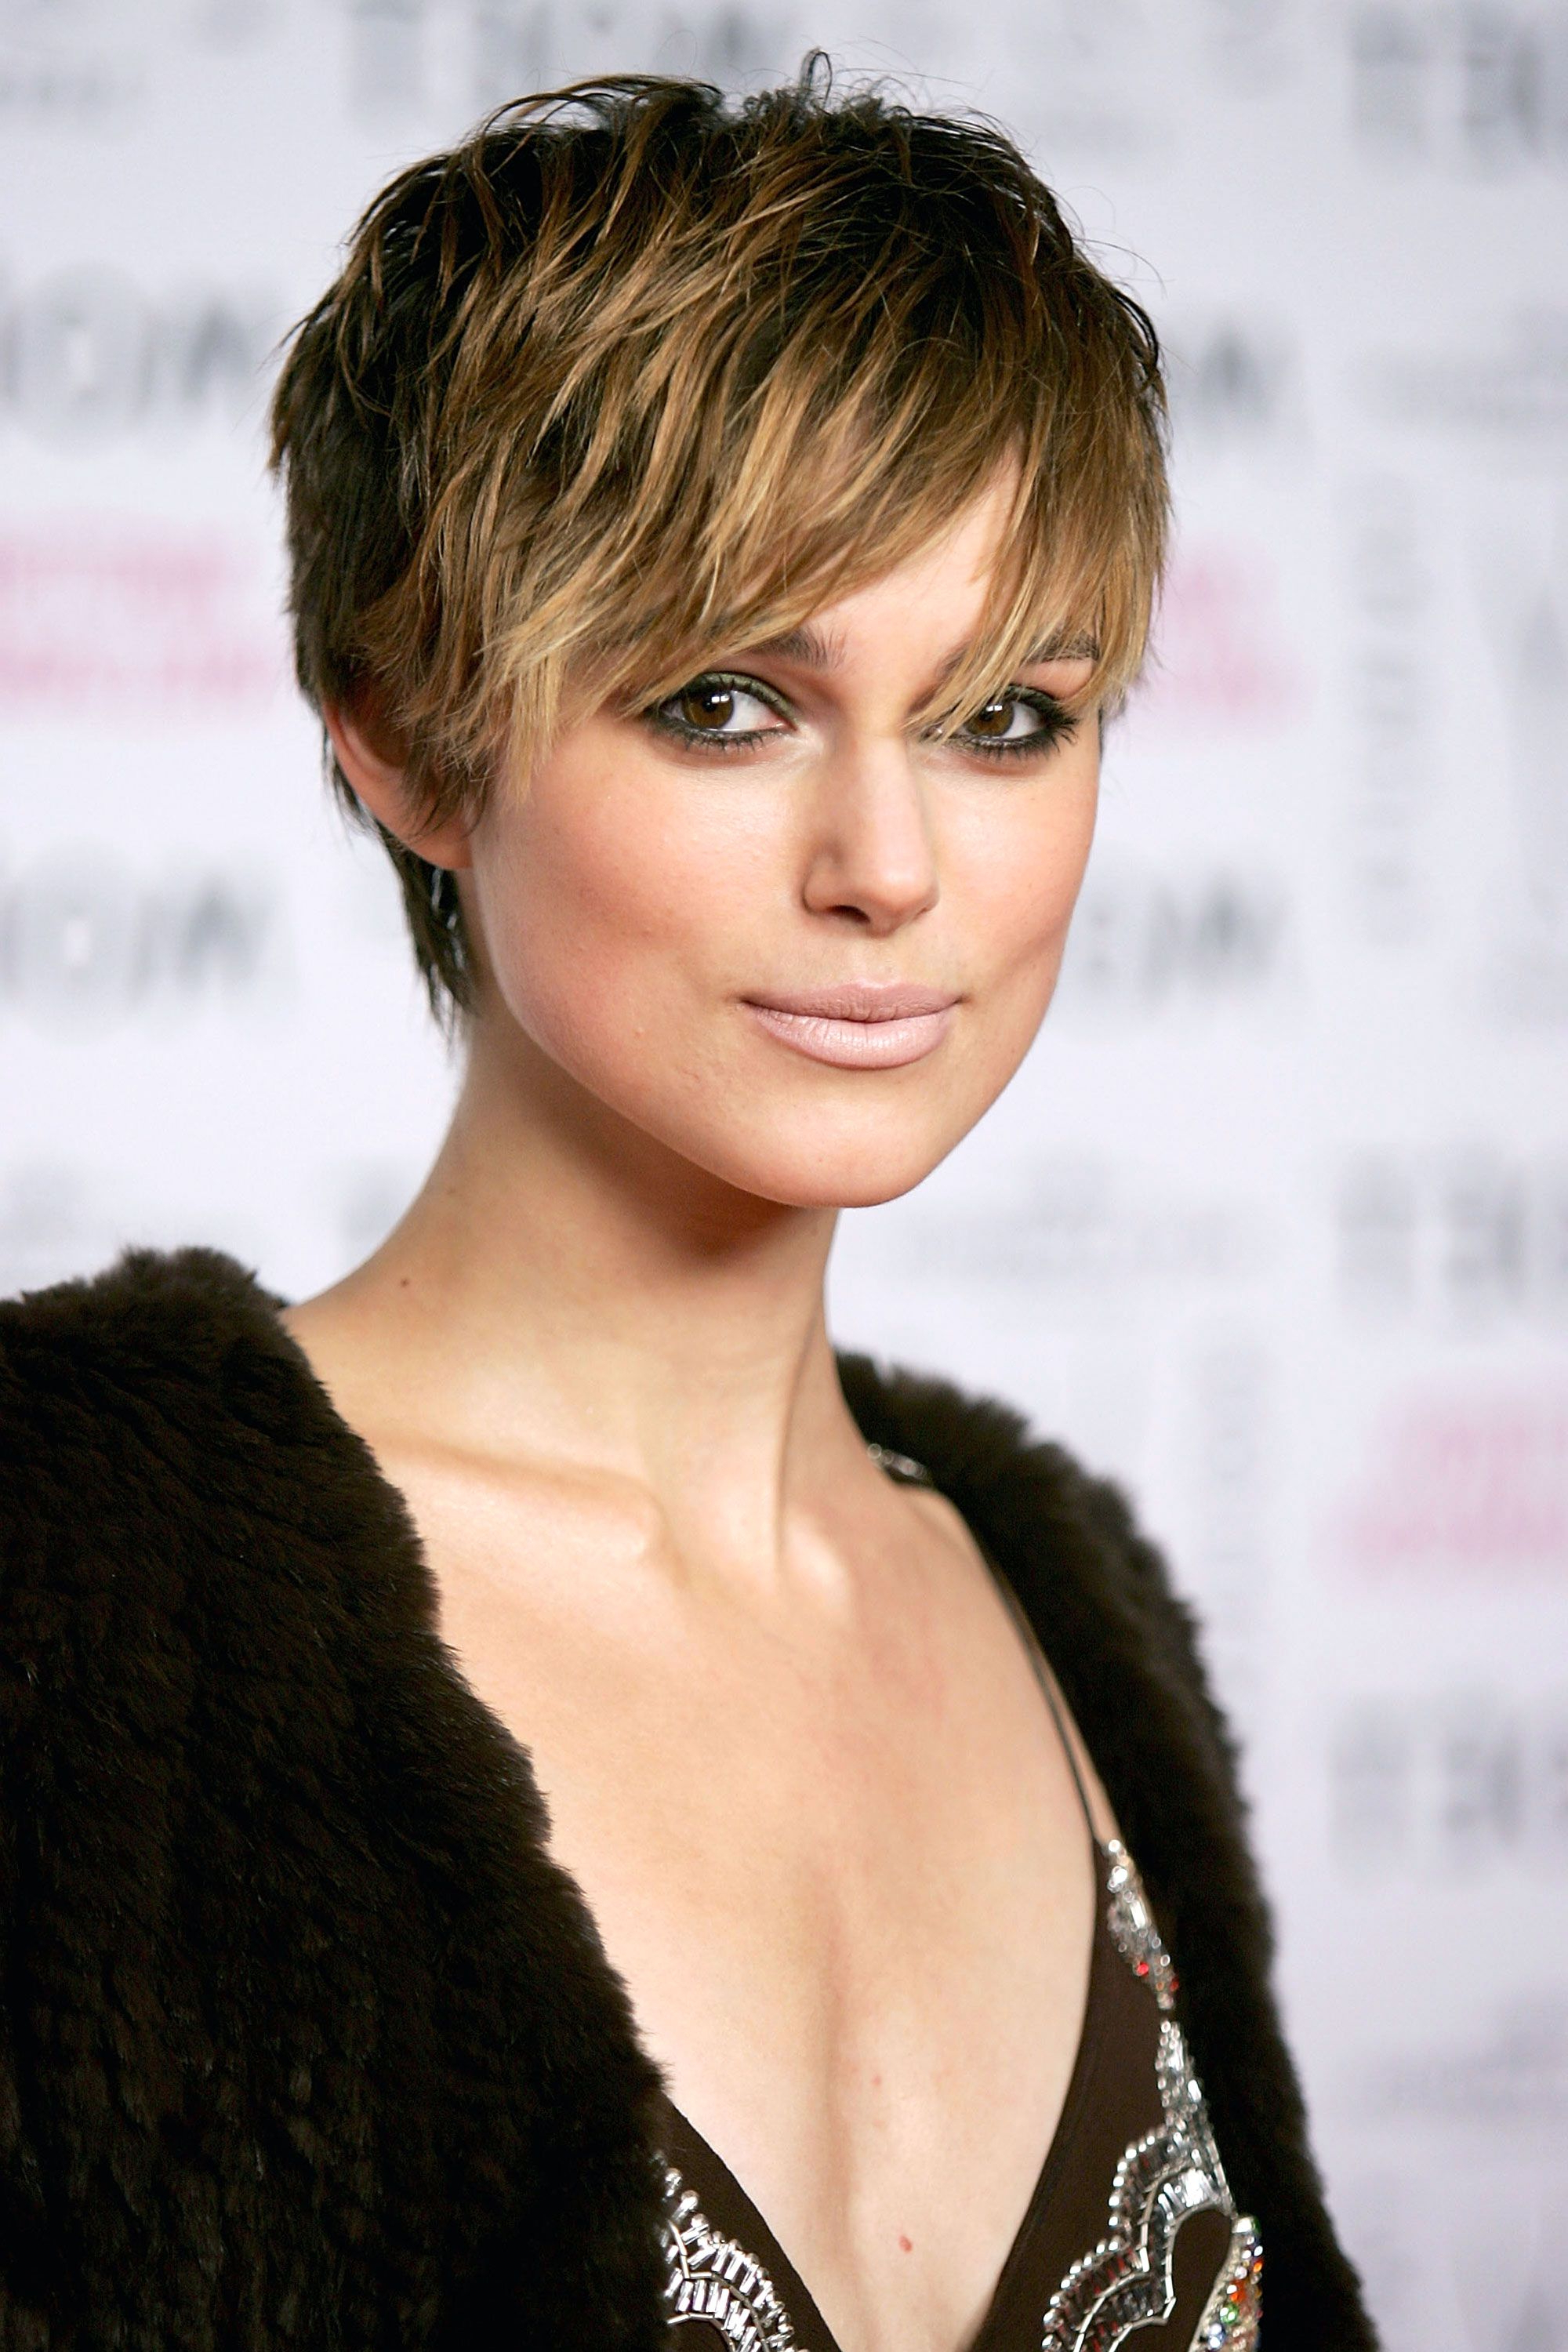 50+ Pixie Cuts We Love For 2018 – Short Pixie Hairstyles From Inside Sassy Pixie Hairstyles (View 4 of 20)